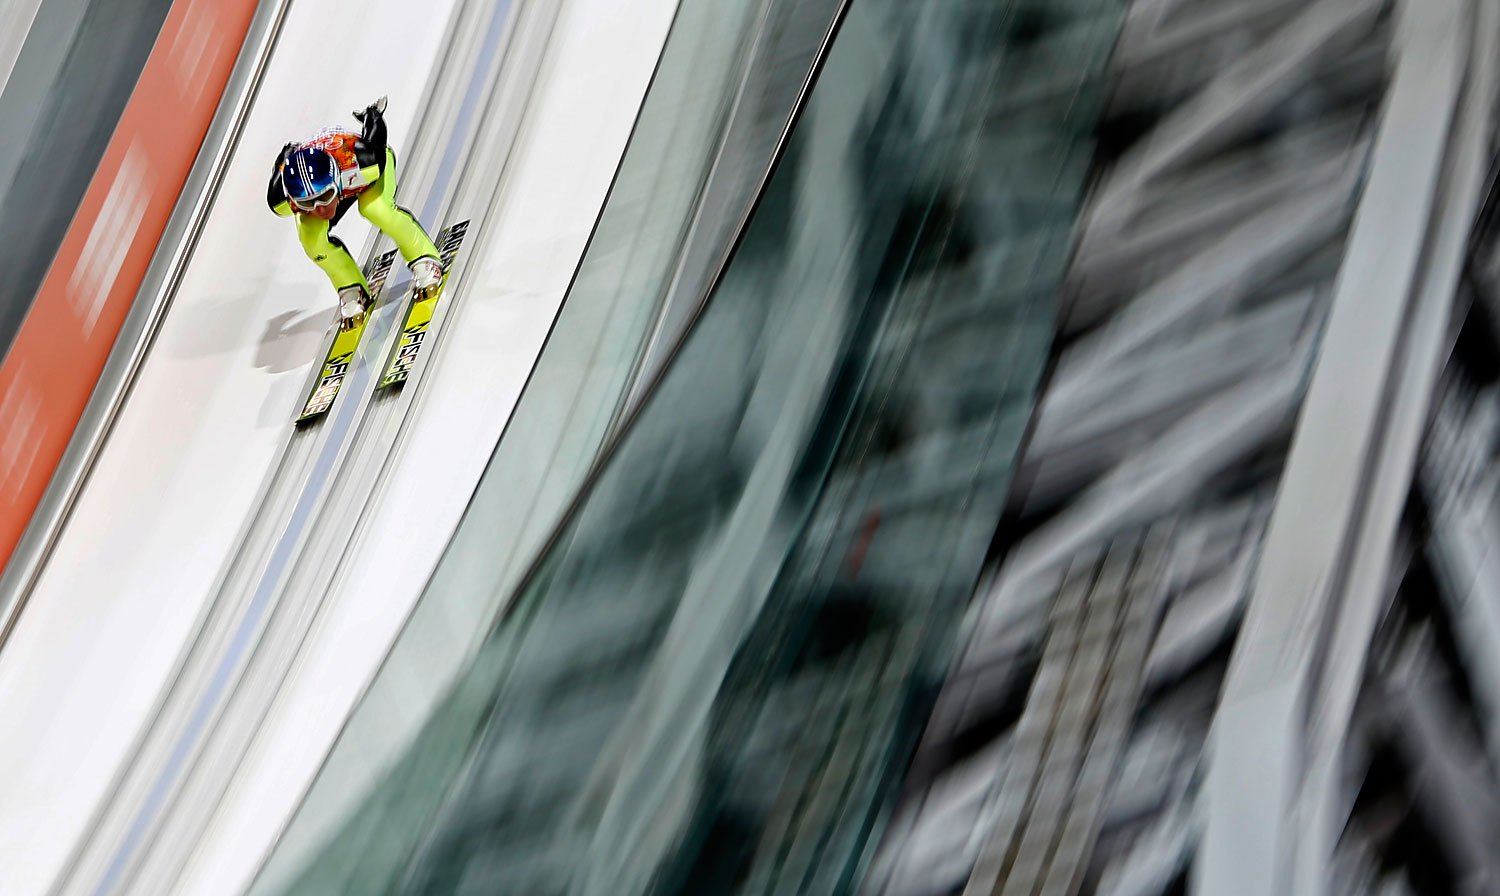 Germany's Severin Freund speeds down the ski jump in his trial jump of the men's ski jumping normal hill individual final event at the RusSki Gorki Ski Jumping Center in Rosa Khutor, Feb. 9, 2014.